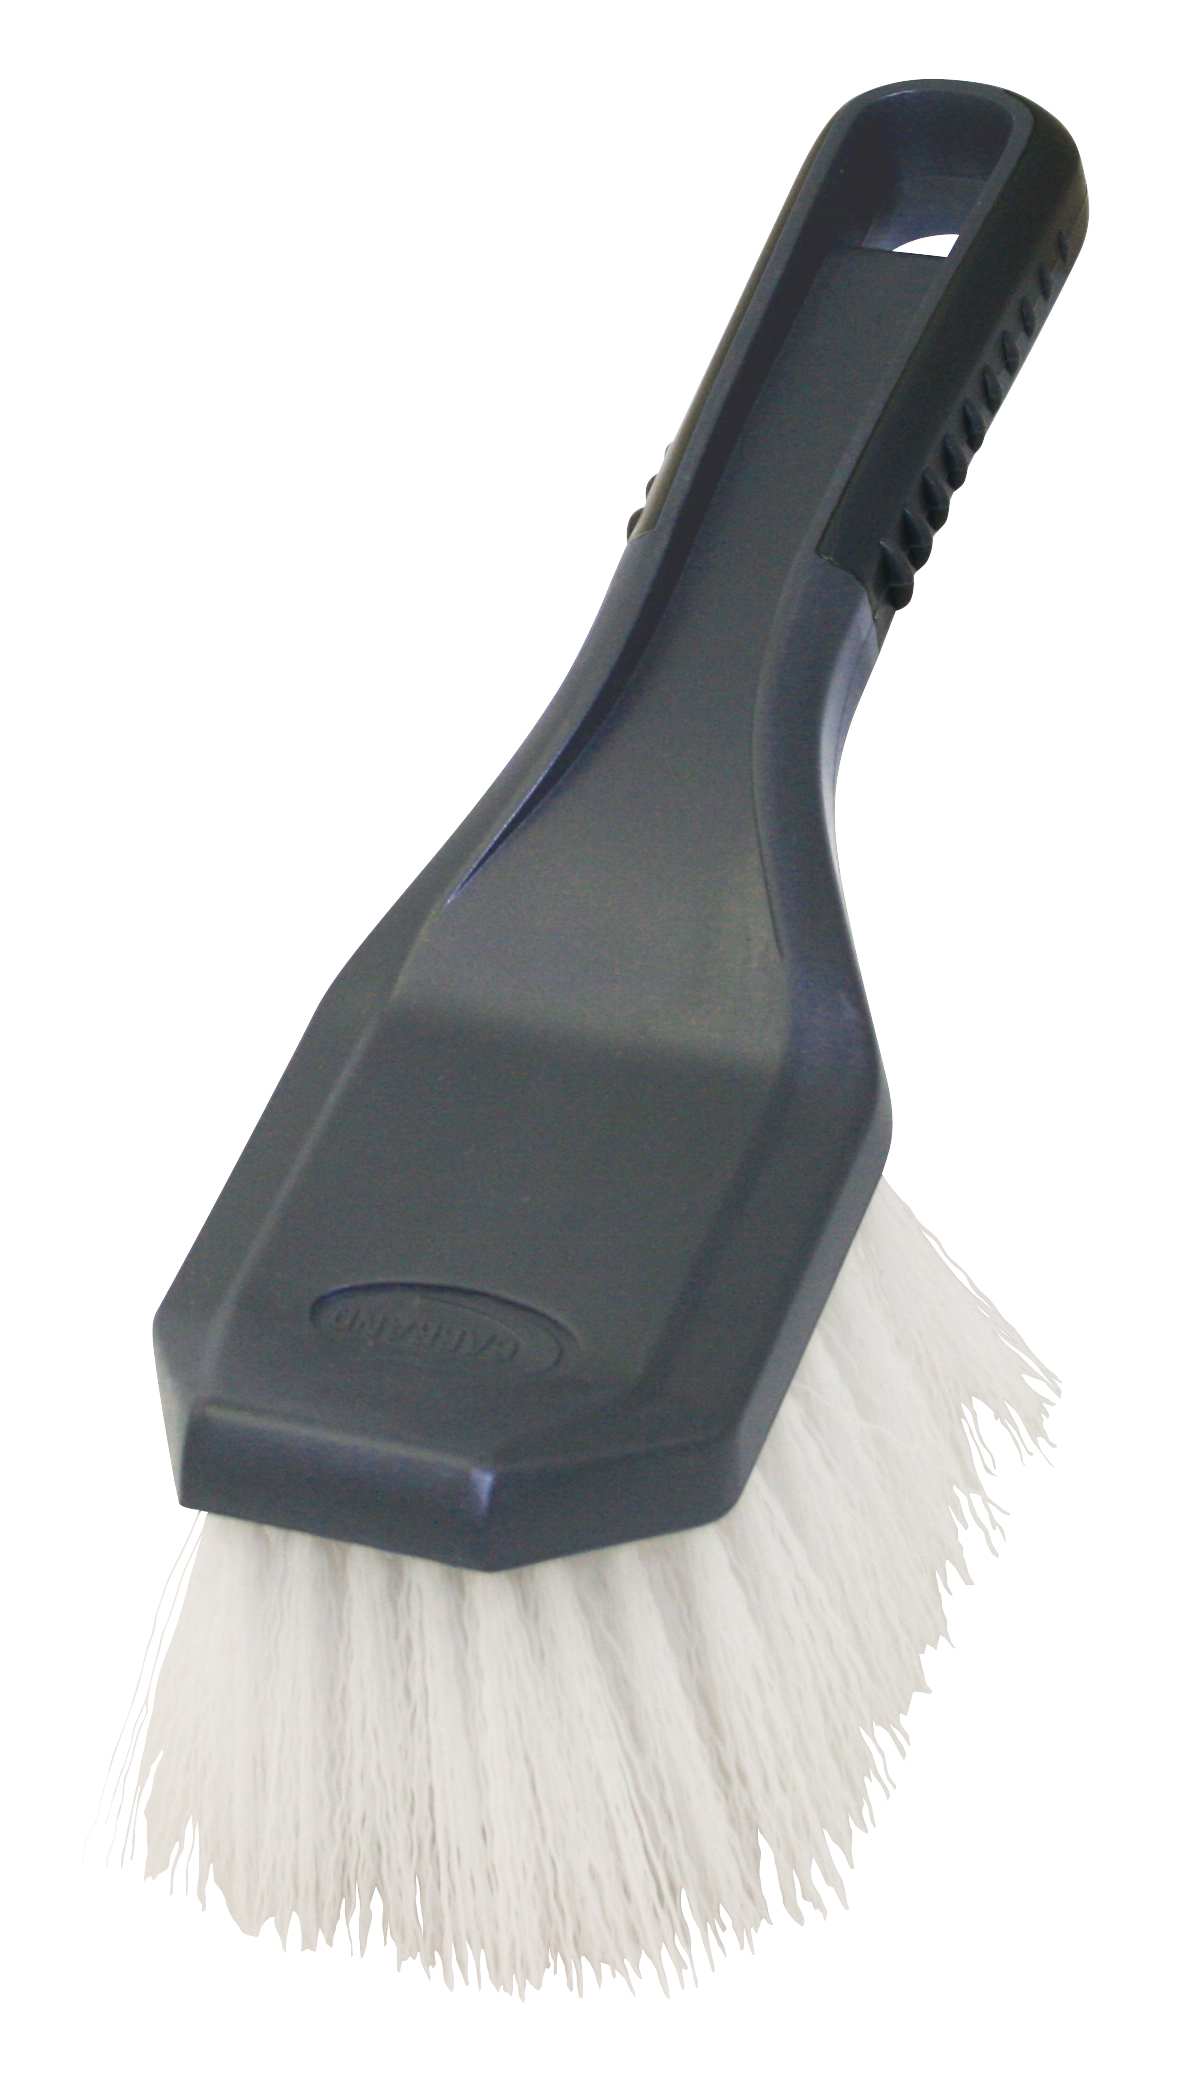 Carrand Rv Window Cleaner : Carrand extendable brushes and brooms page